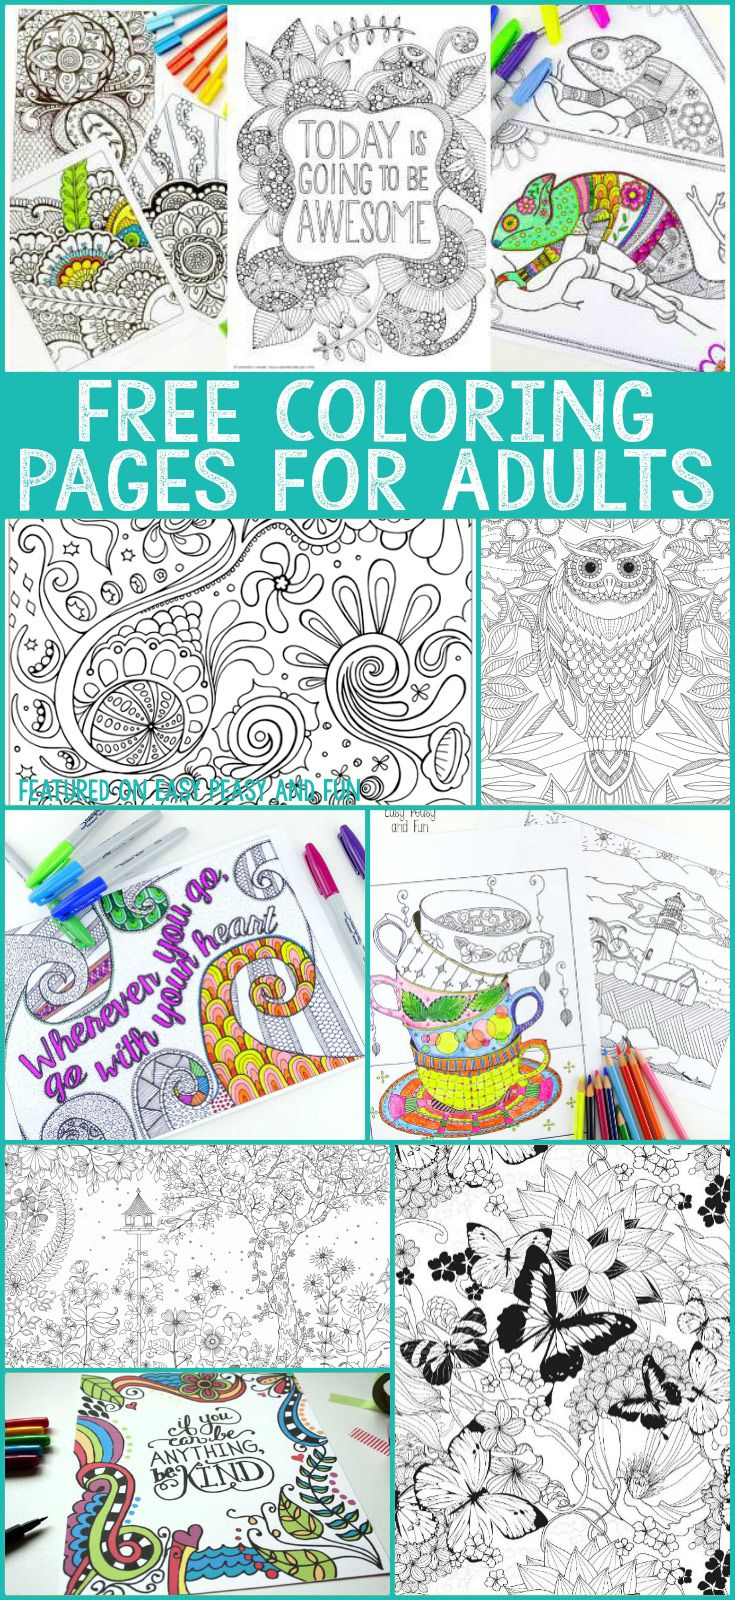 Free Coloring Pages for Adults in 2018 | Print or PDF | Pinterest ...